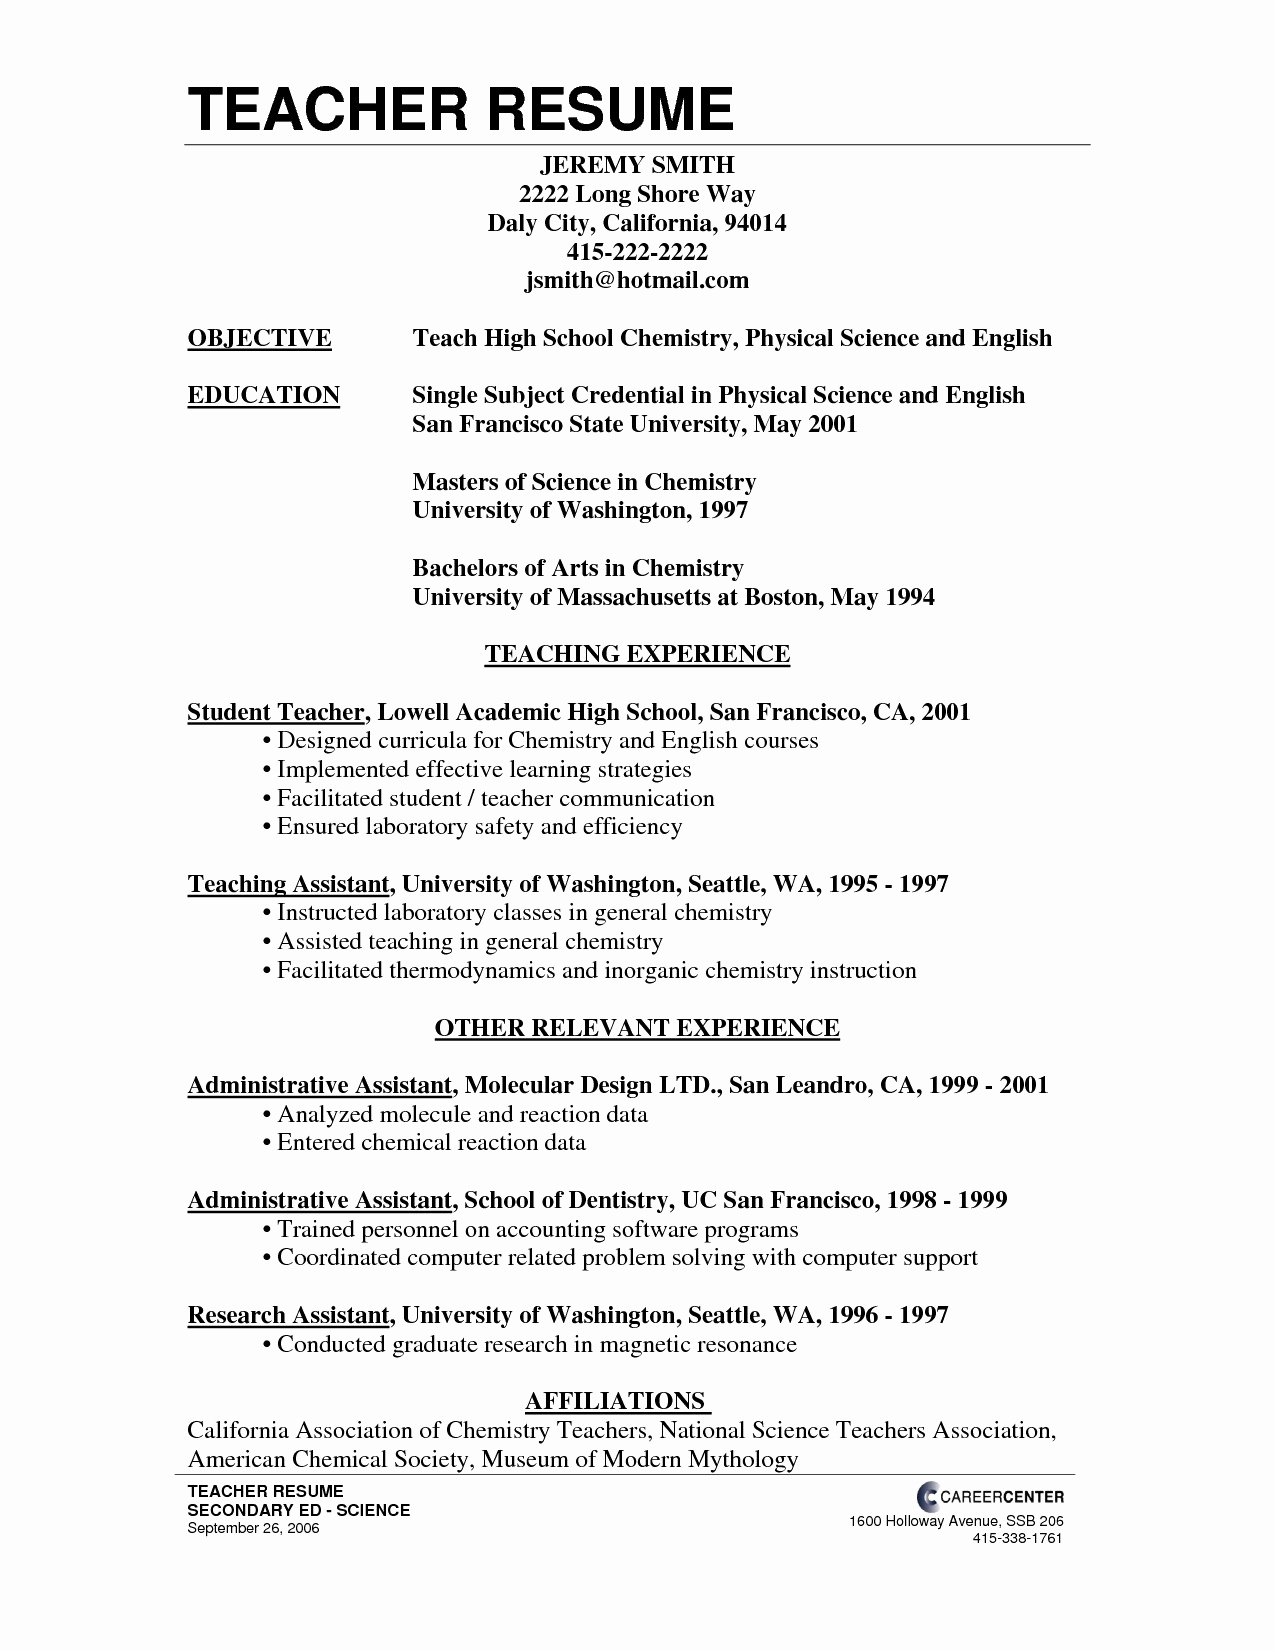 Professional Cover Letter Template Free - Resume Cover Letter Example New Free Cover Letter Templates Examples